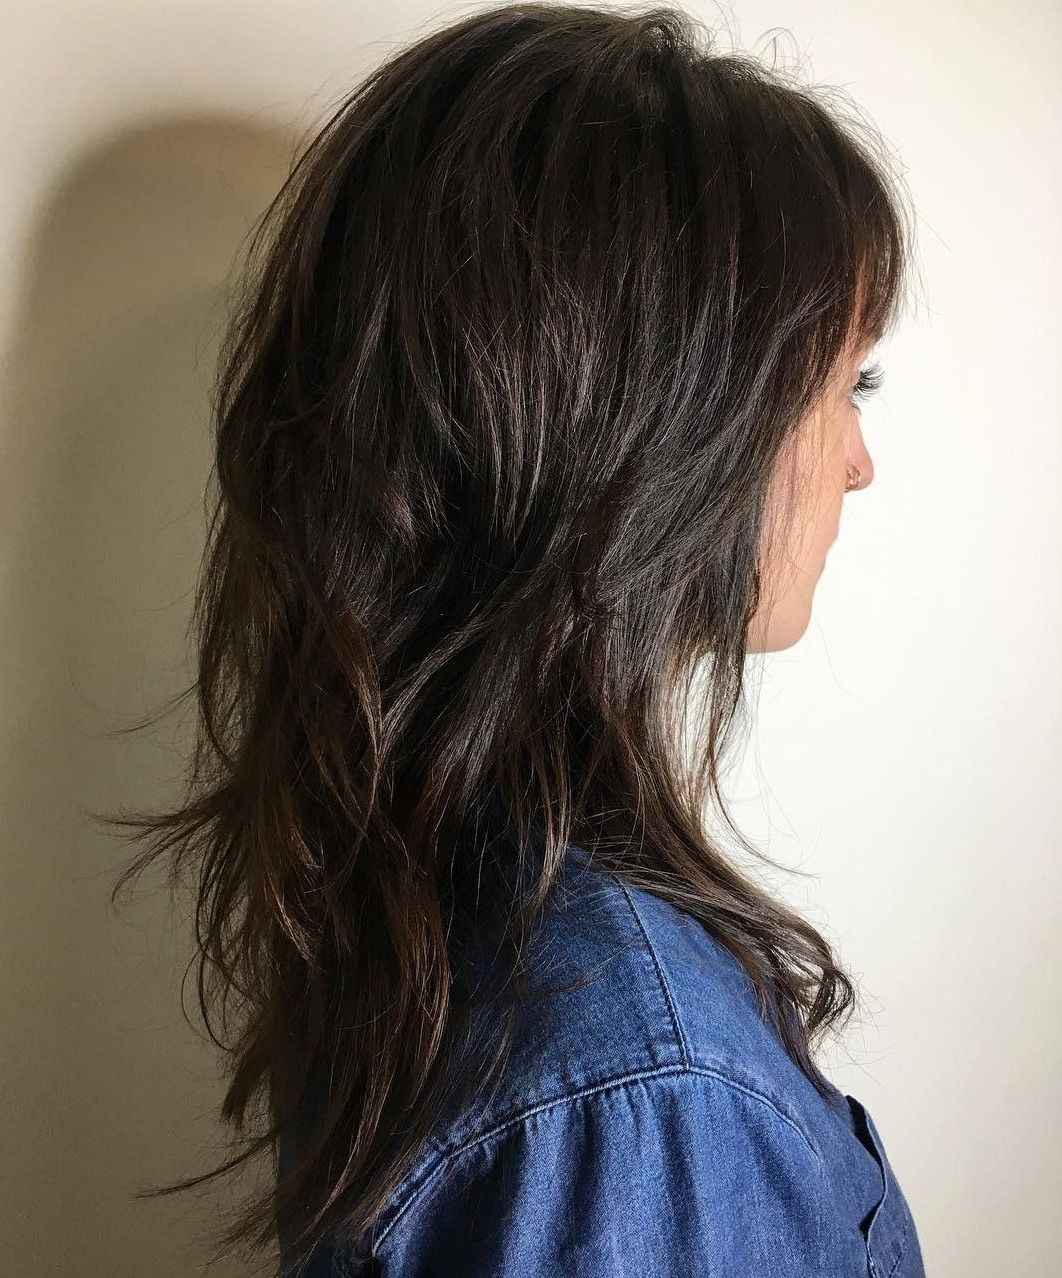 60 Lovely Long Shag Haircuts For Effortless Stylish Looks Pertaining To Most Recent Long Wispy Brunette Shag Haircuts (Gallery 5 of 20)